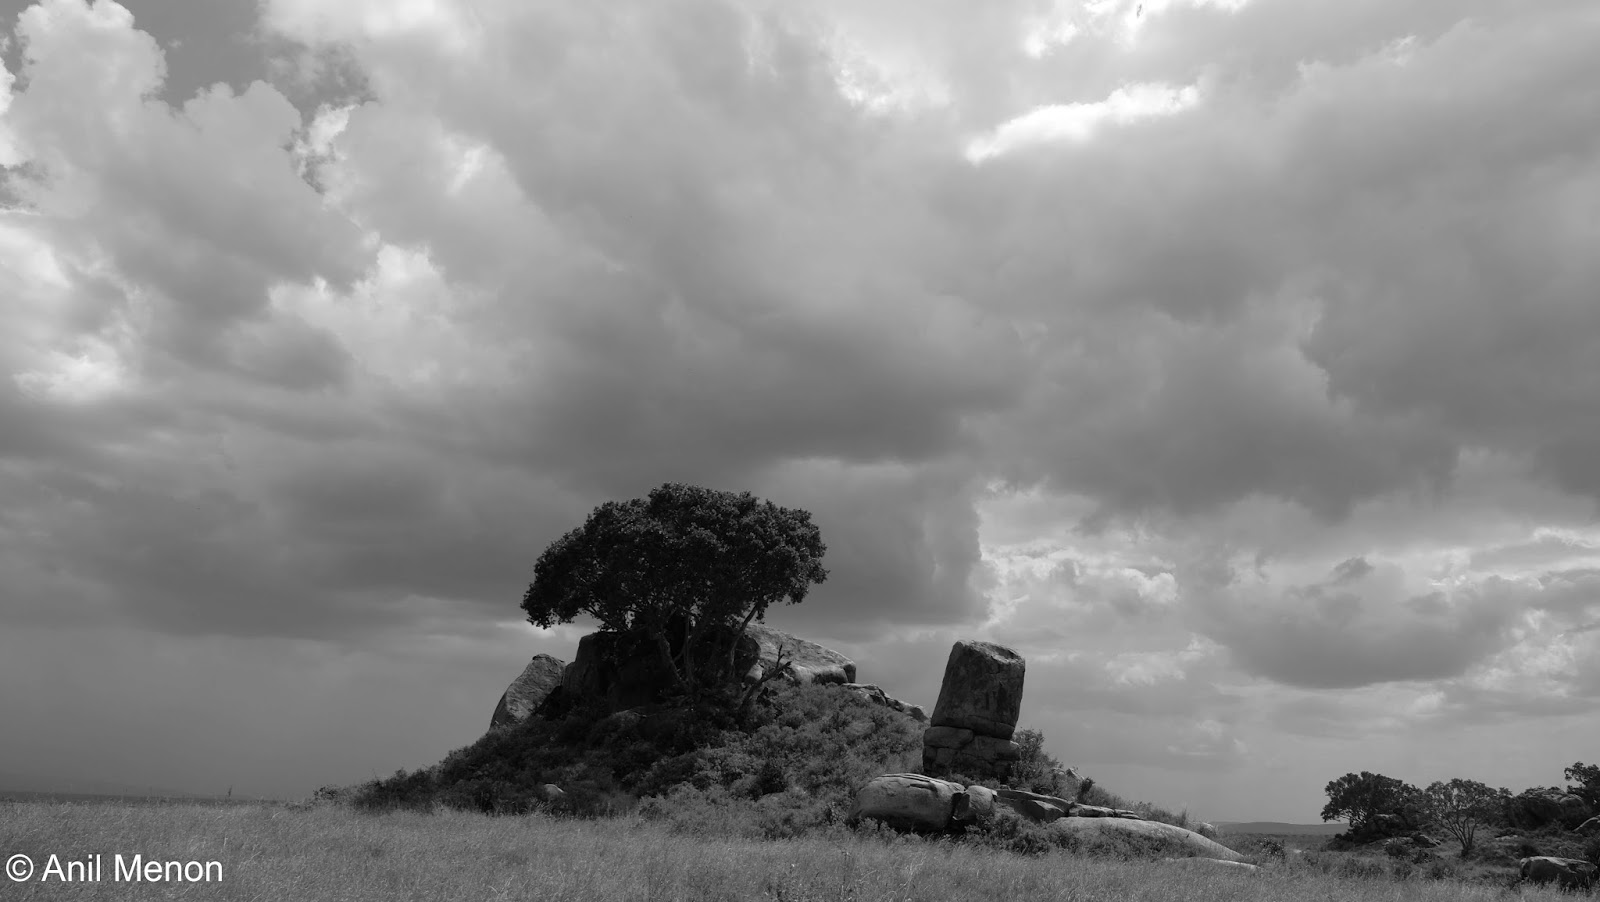 A black and photo of a tree surrounded by endless plains in Tanzania